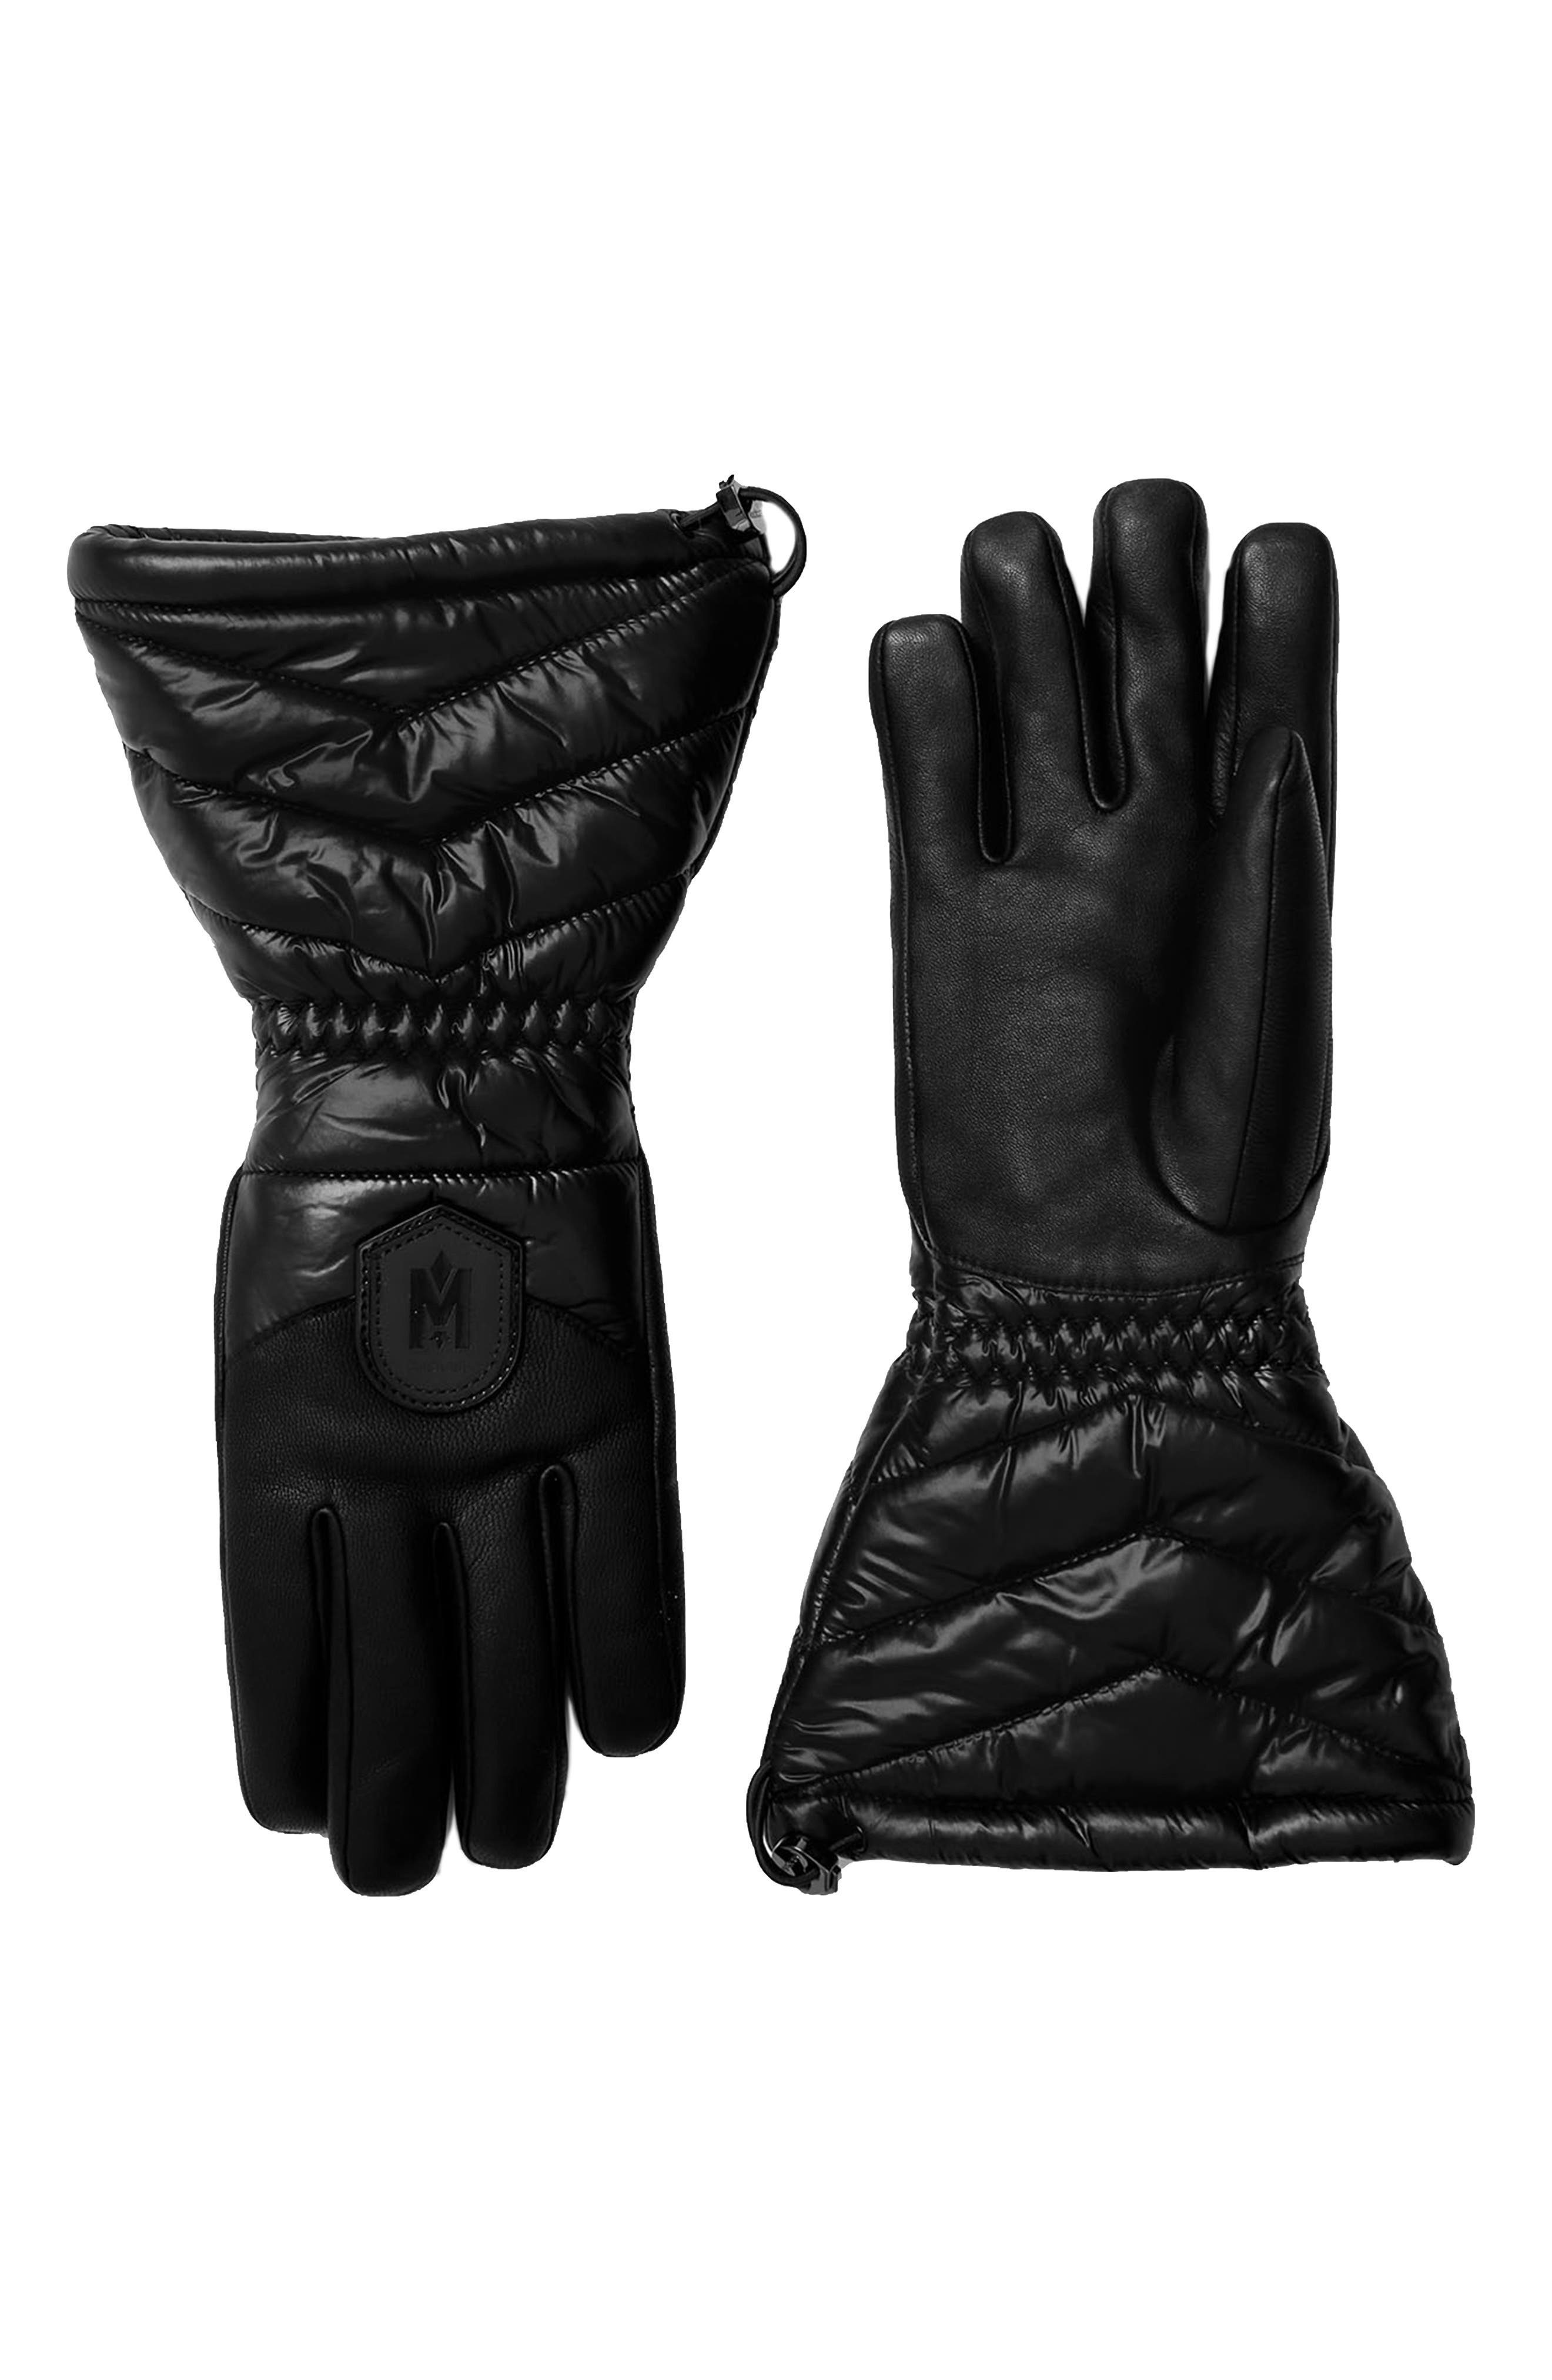 Faux leather woman/'s gloves Winter gloves Wine Gloves Black gloves Touchscreen gloves Eco Friendly Gloves Purple Gloves